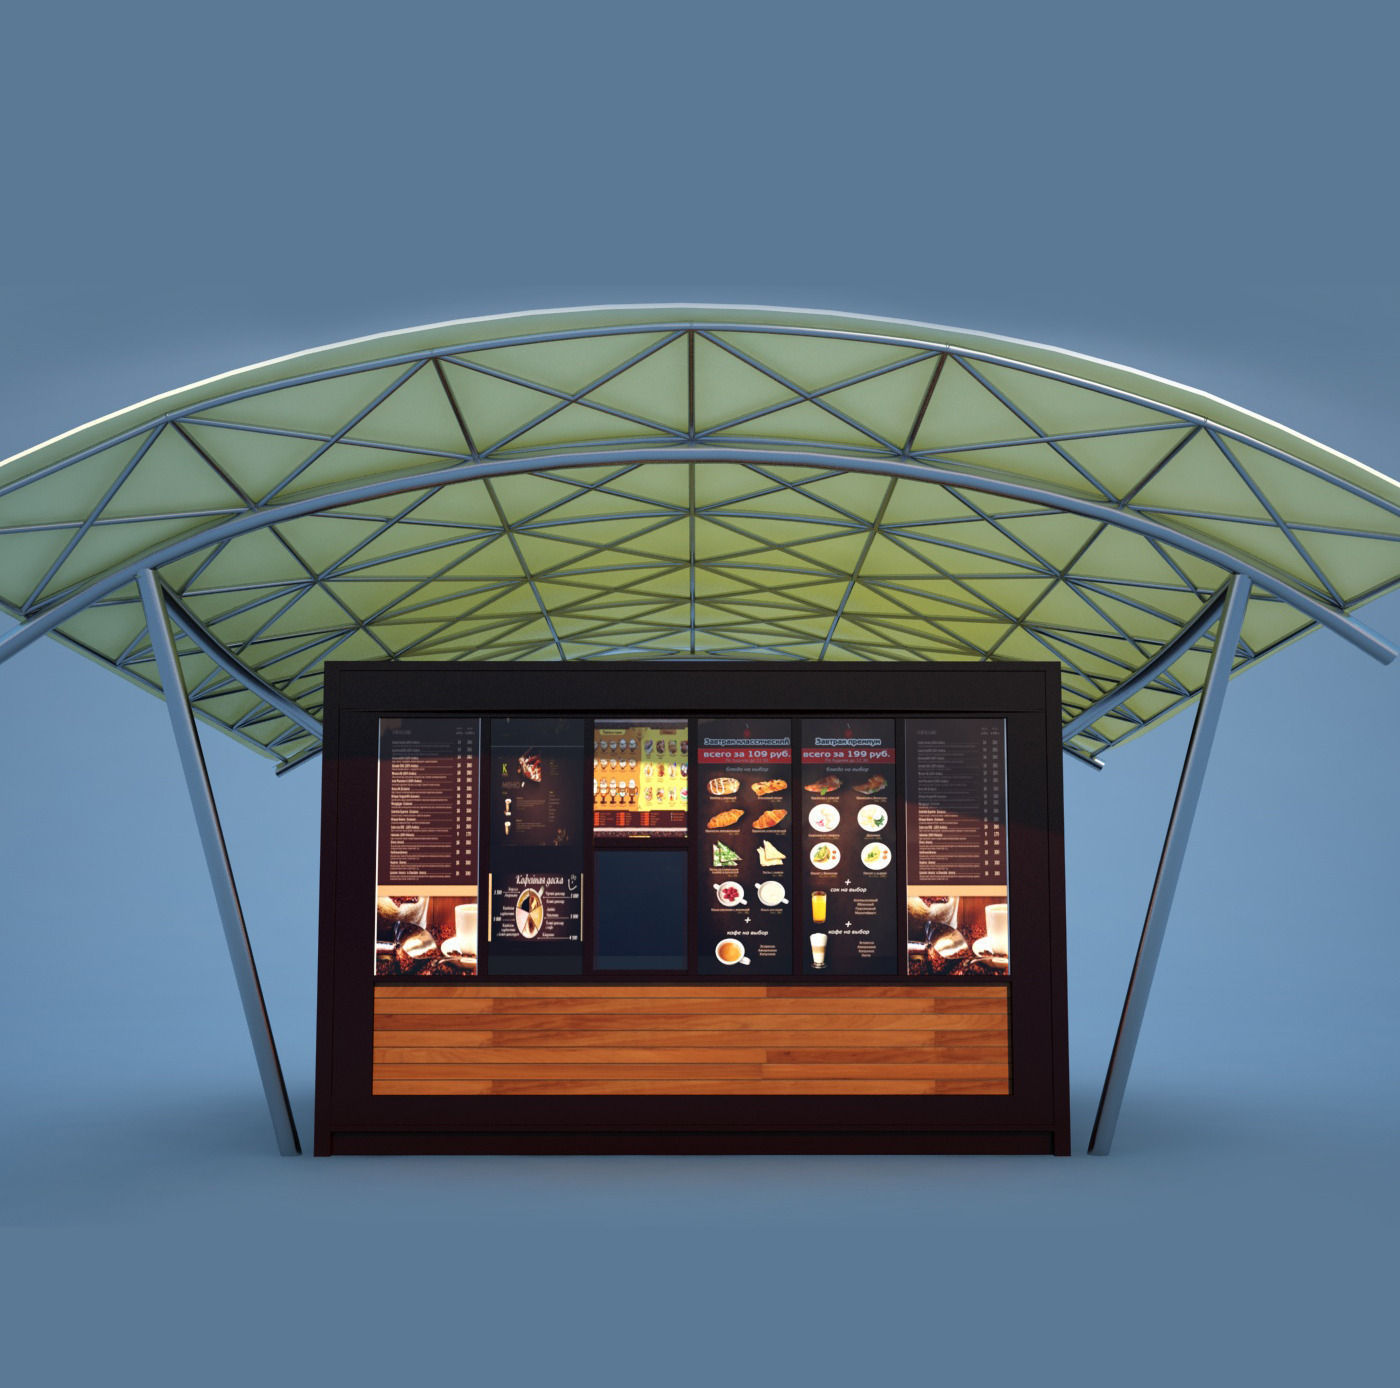 Coffee kiosk 3d model max for Exterior 3d model